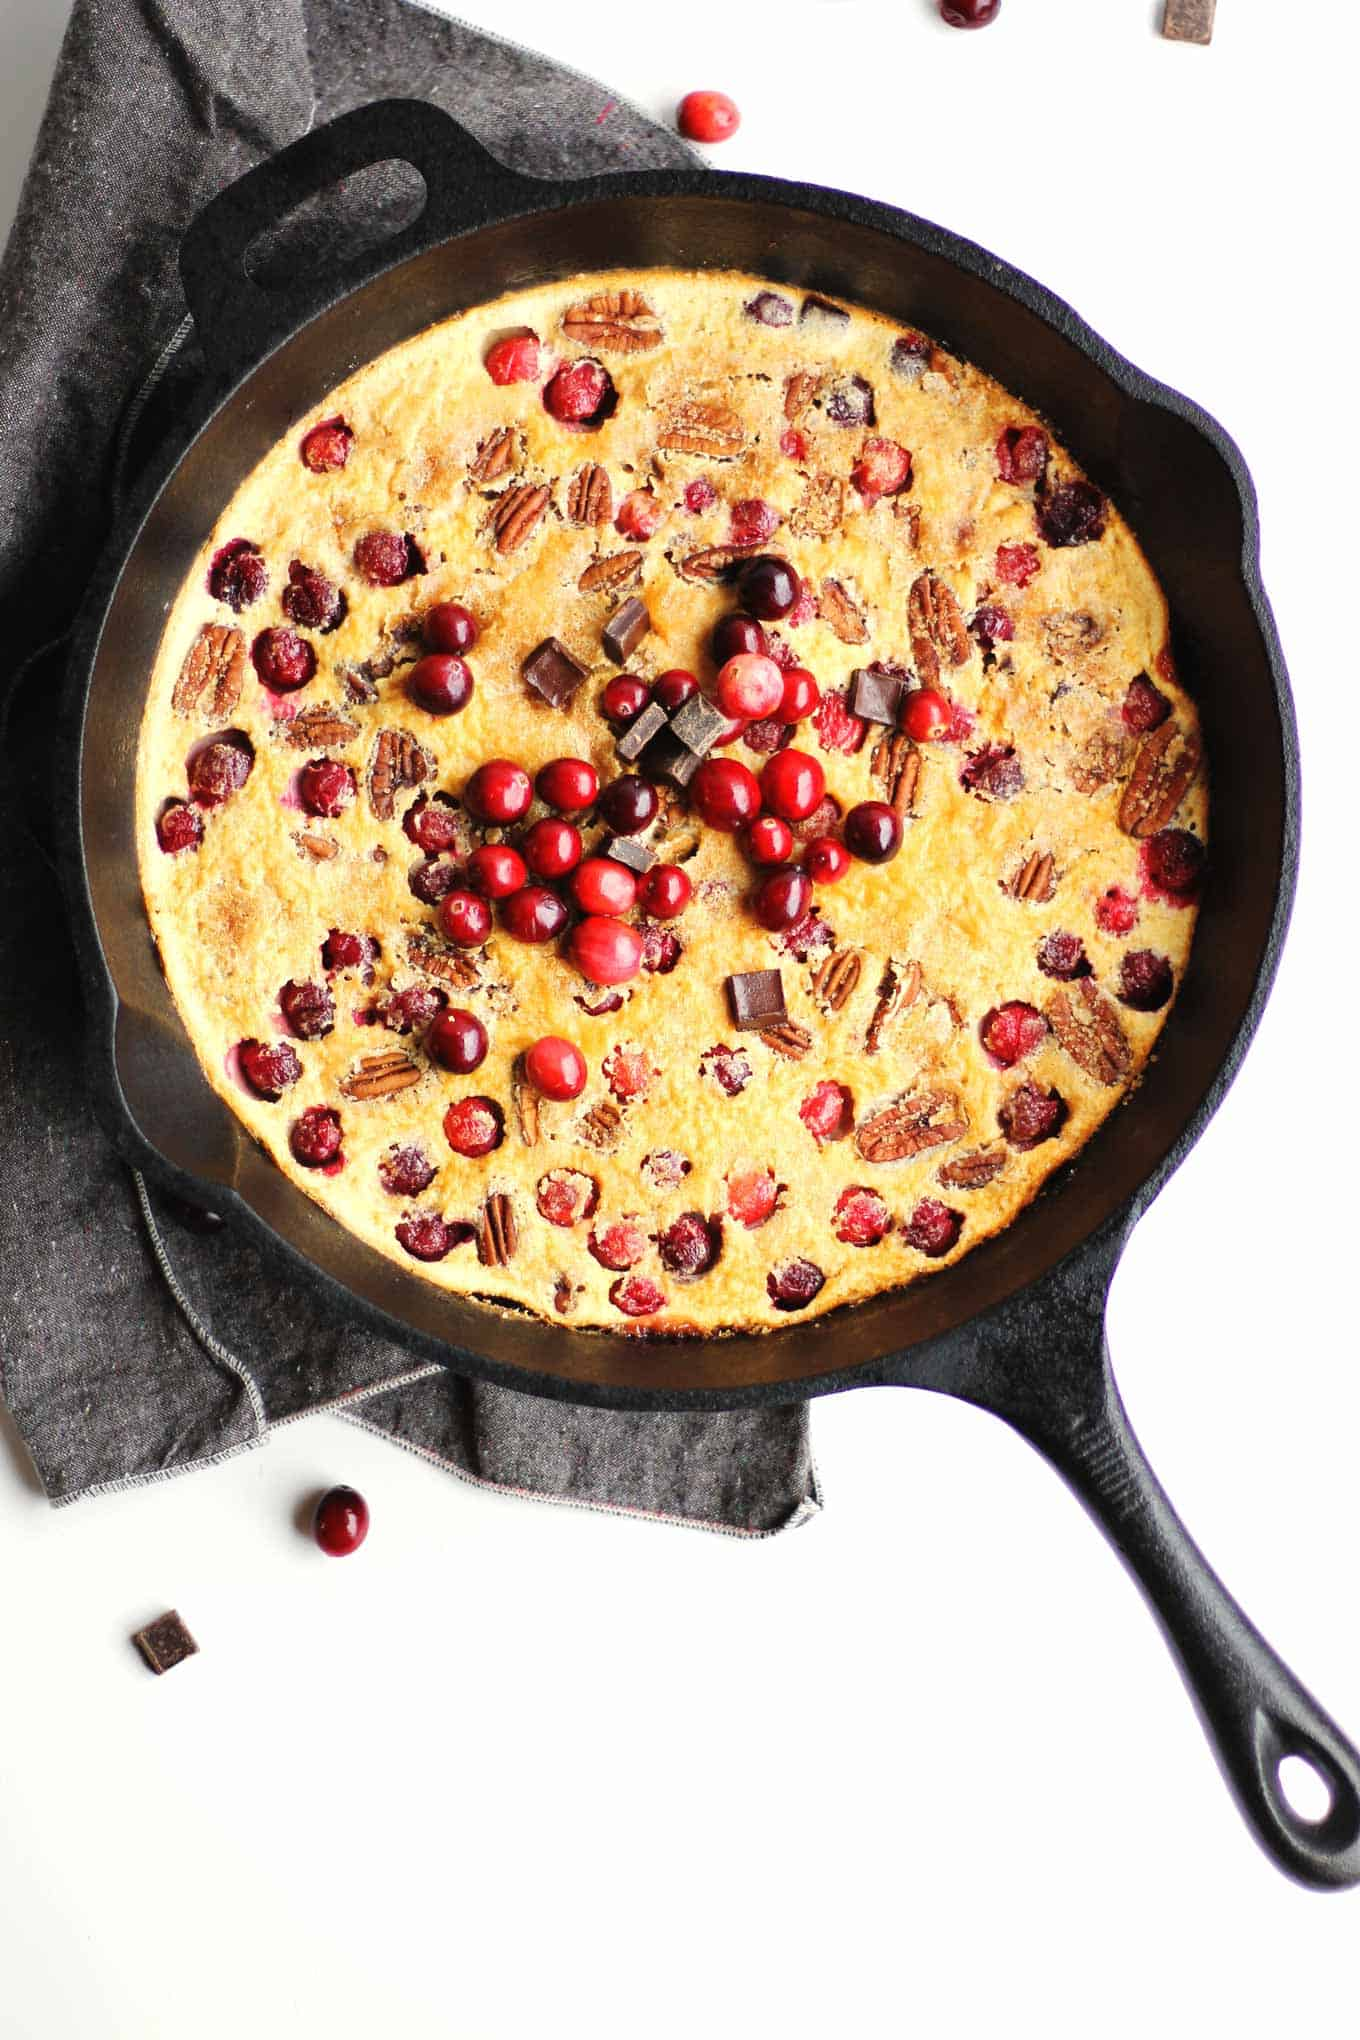 Cranberry clafoutis with dark chocolate and pecans! Easy blender recipe for the classic French custardy breakfast, with a holiday spin. Eat dessert for breakfast! - Rhubarbarians